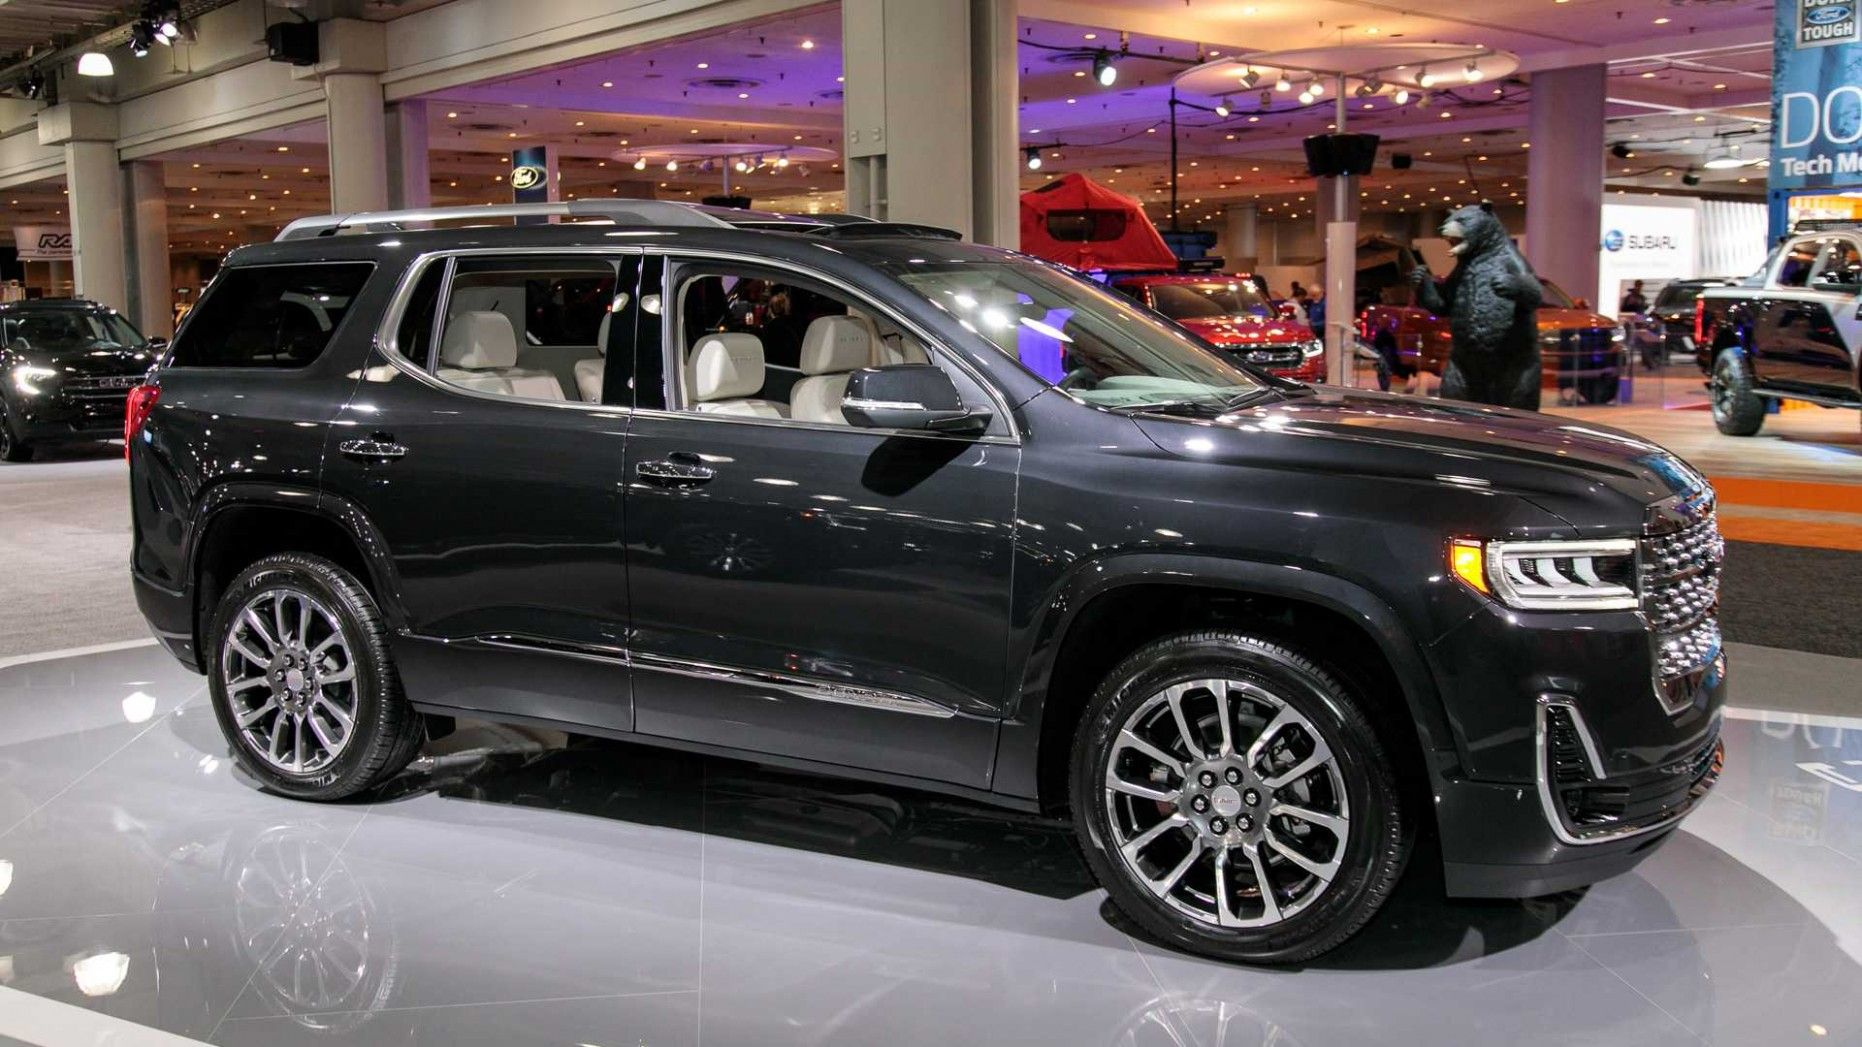 2020 Gmc Acadia First In 2020 Acadia Denali Gmc Gmc Yukon